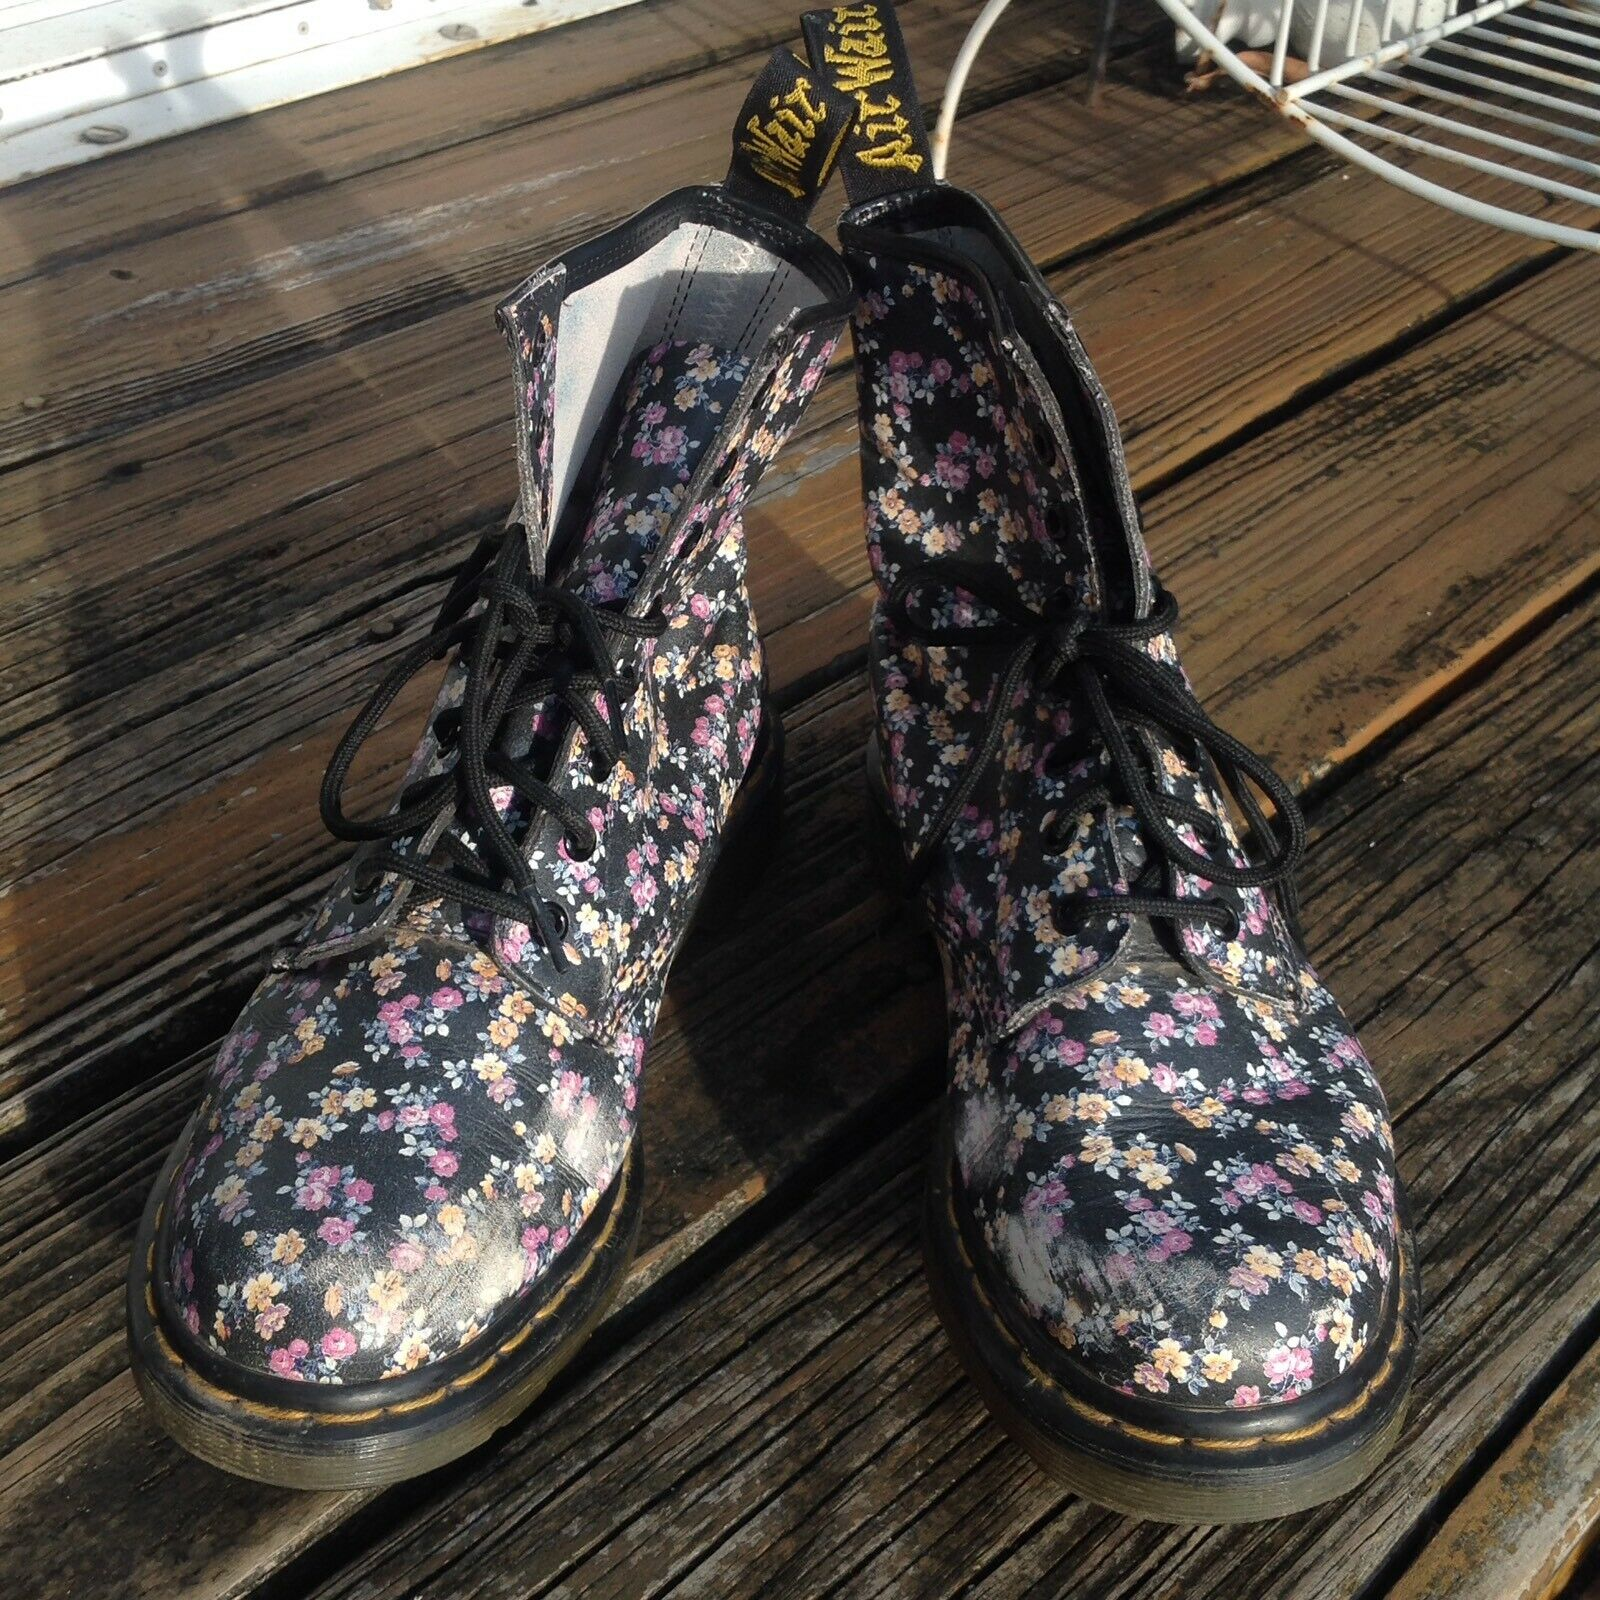 Dr. Doc Martens Victorian Black Floral Boots 8 39 1460 Pink Green Leather Combat